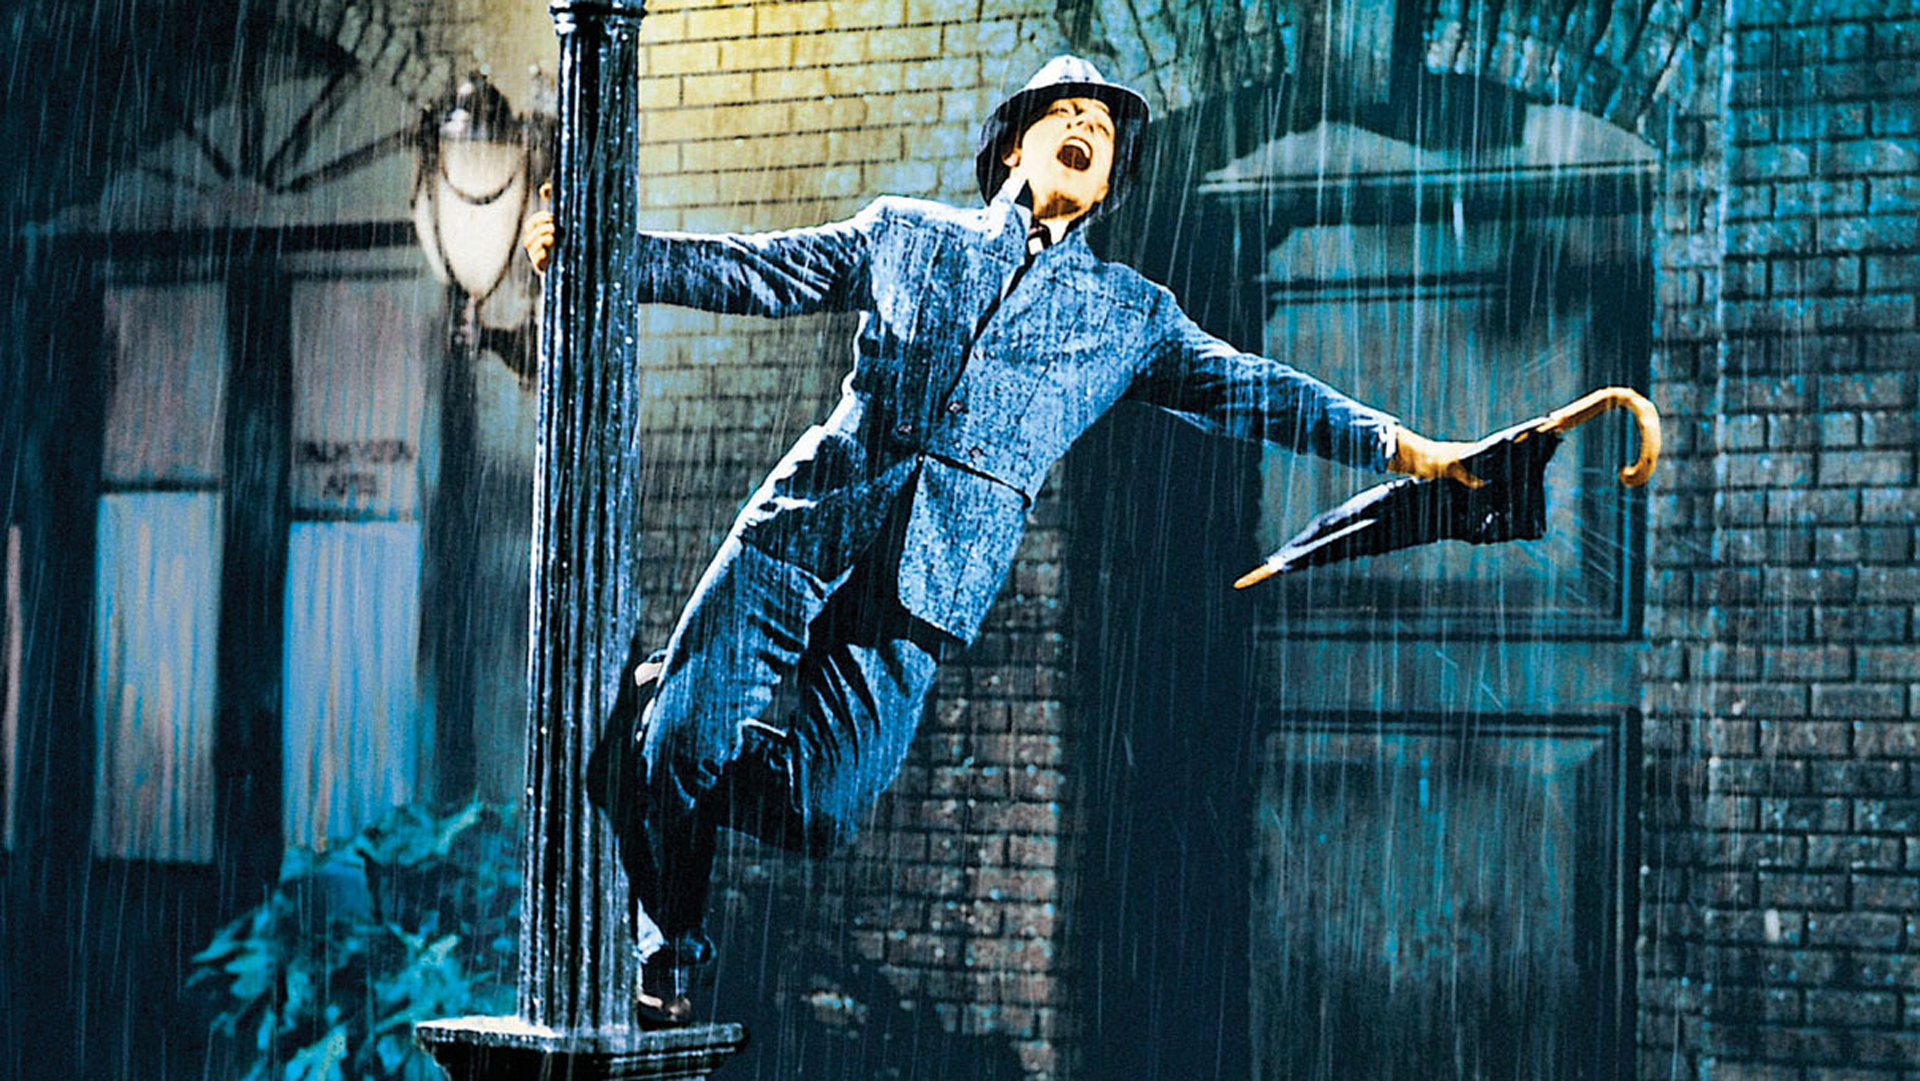 HIDDEN GEMS: 16. SINGIN' IN THE RAIN